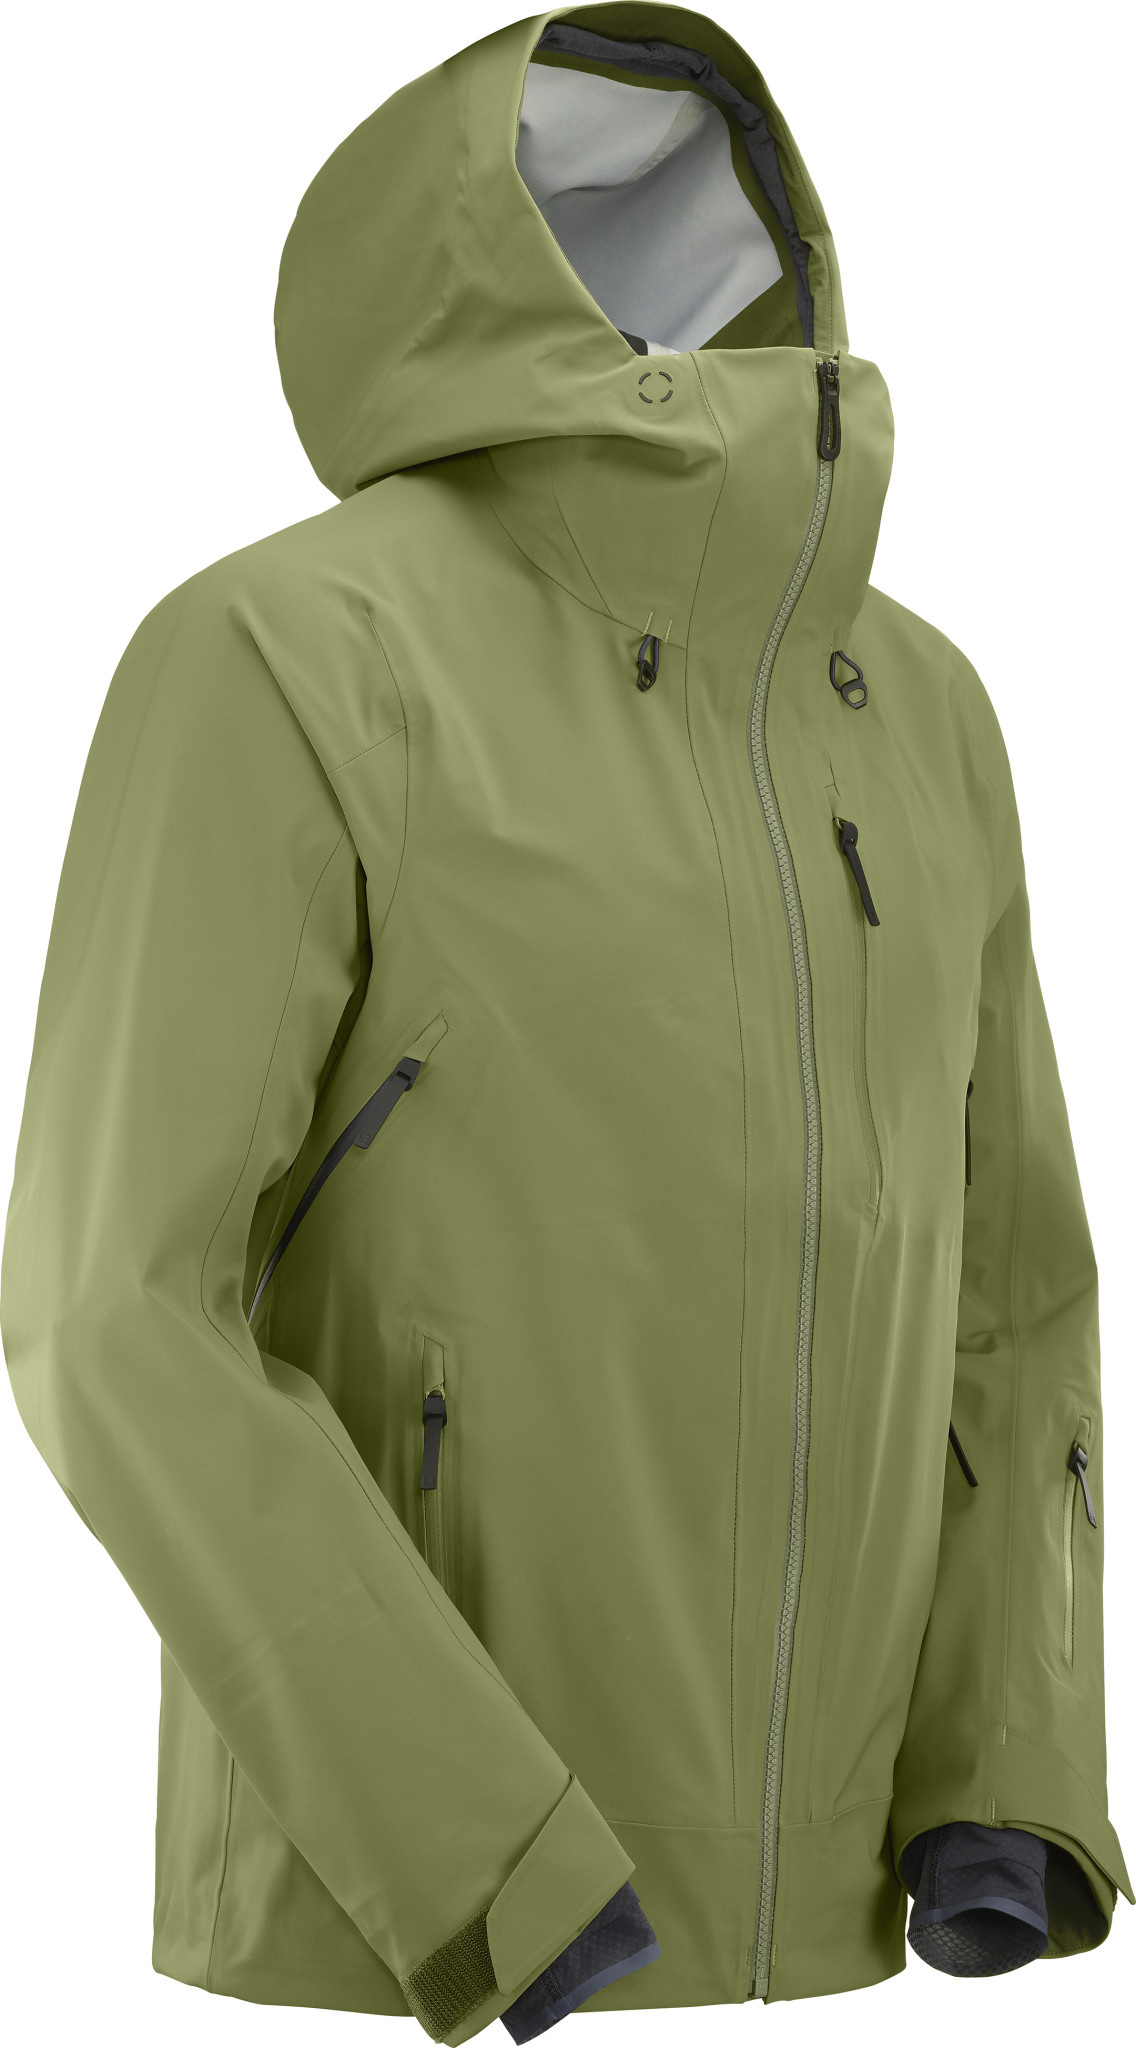 OUTLAW 3L SHELL JACKET M-5